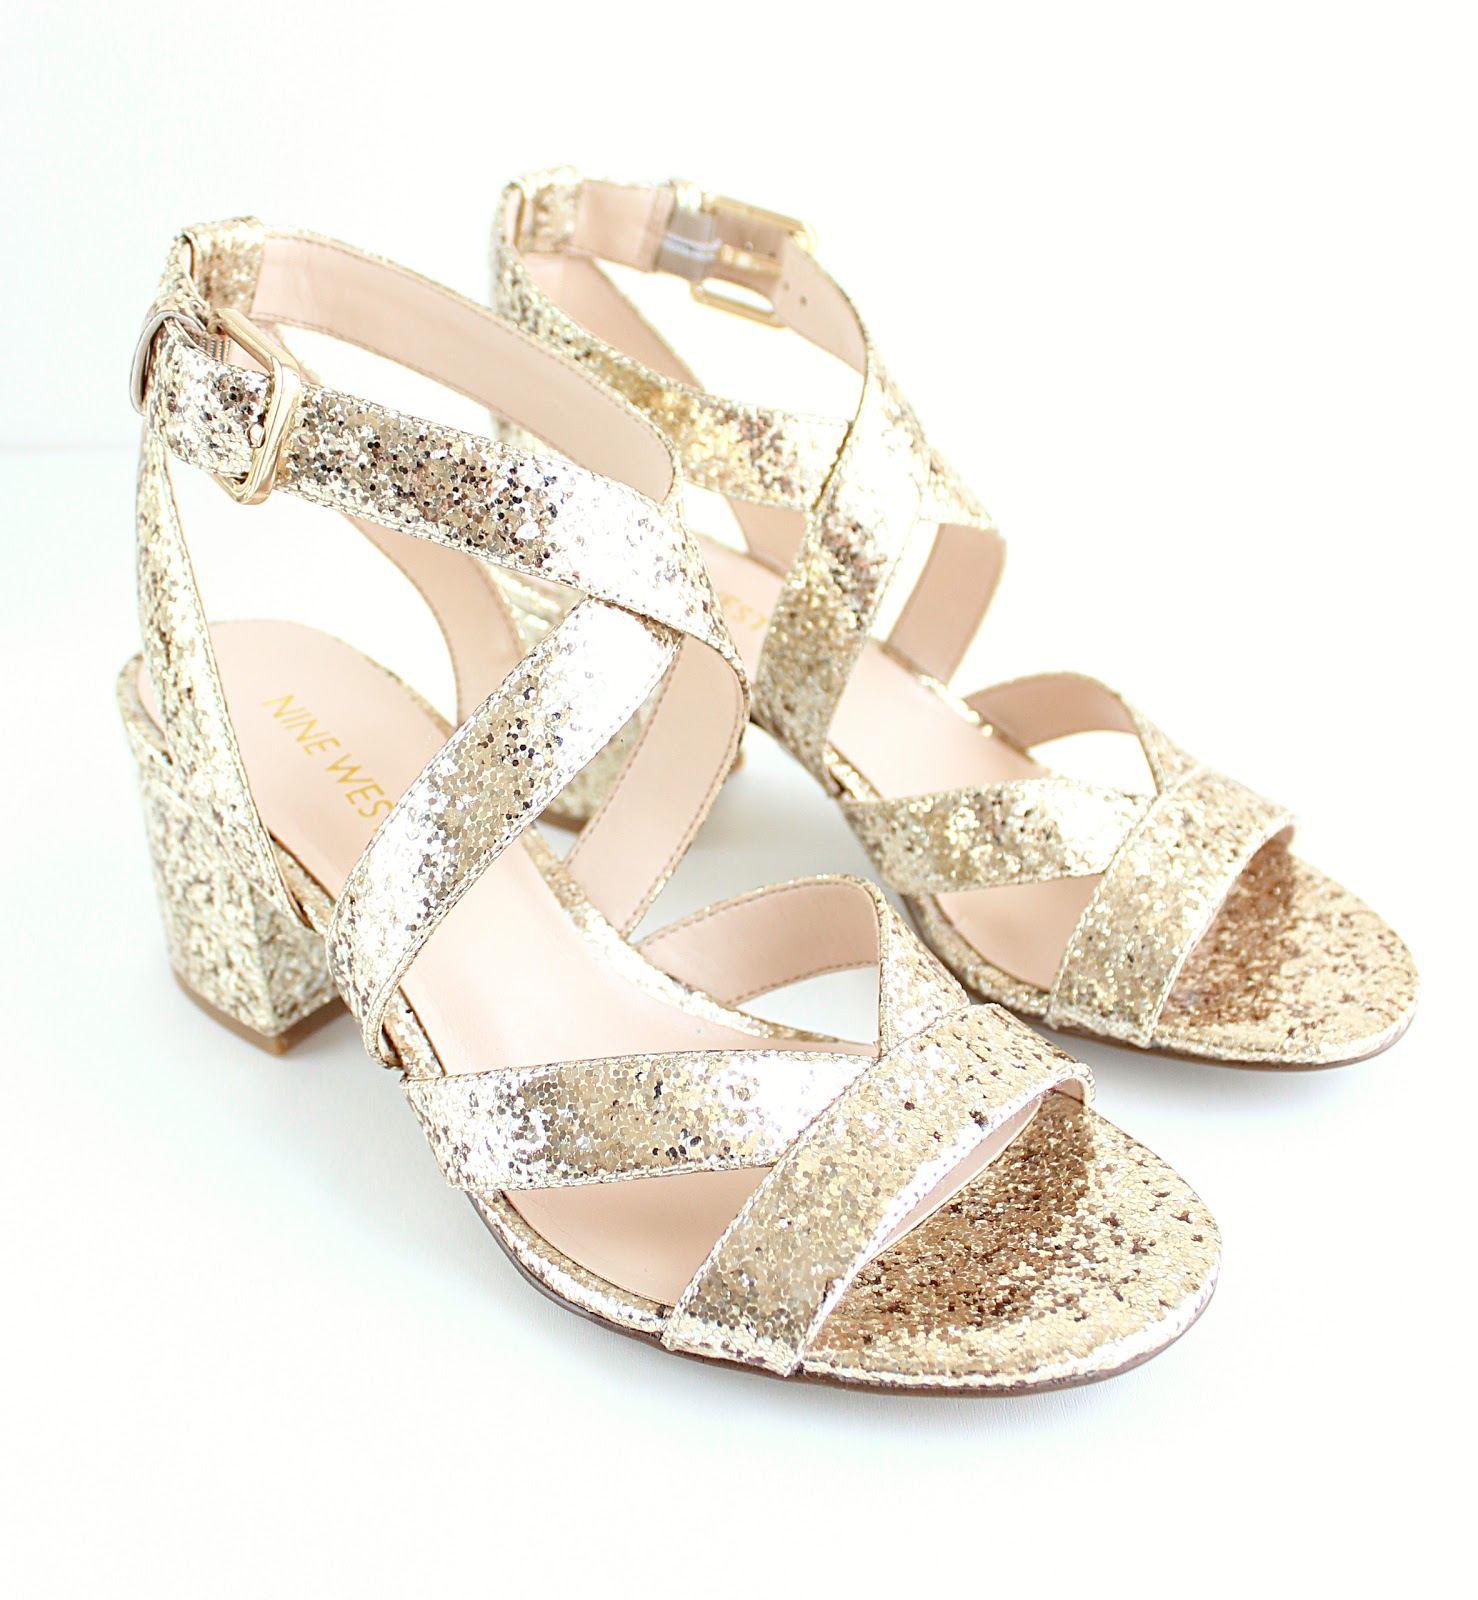 Nine West Green Tea Gold Sandals, Life in Excess Blog